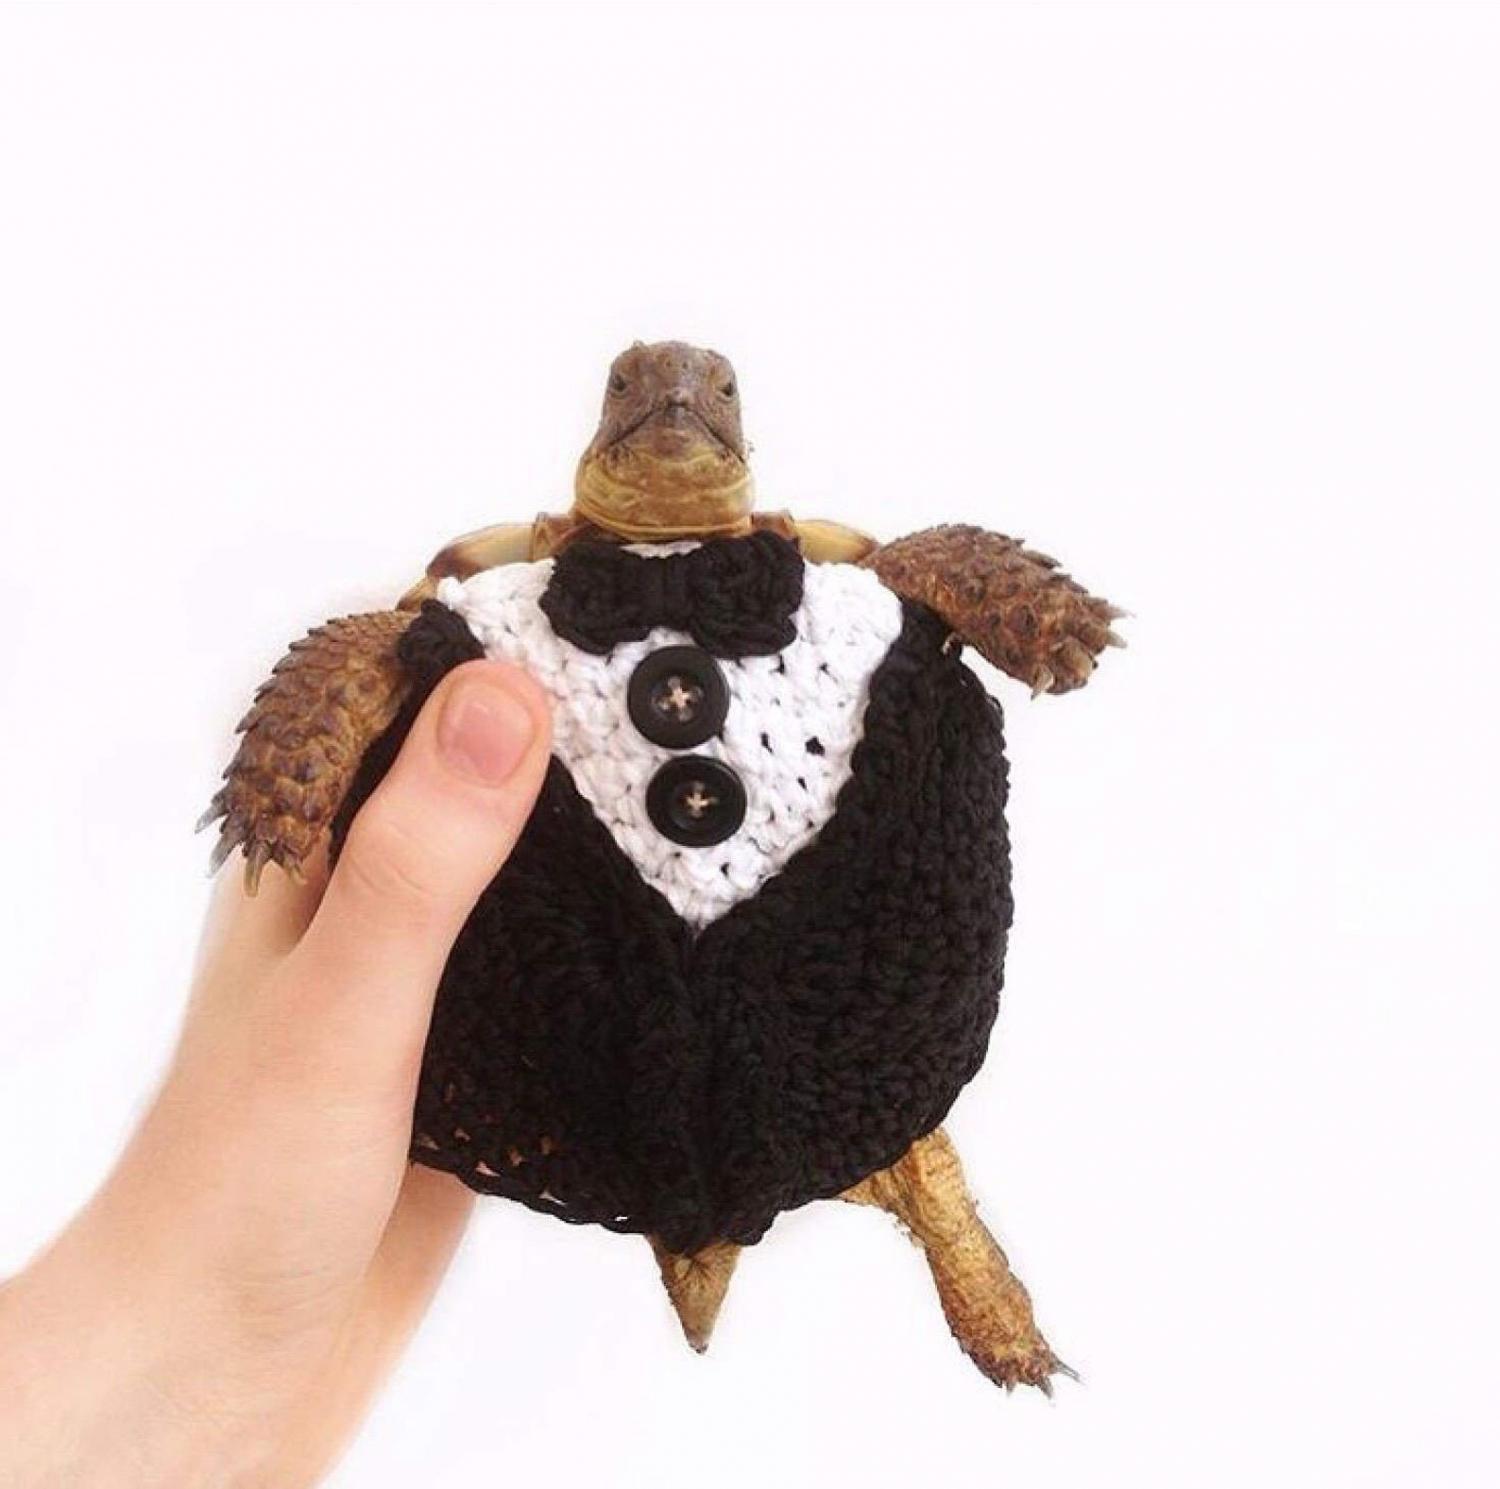 Crochet Turtle Sweater - Tuxedeo tortoise cozy